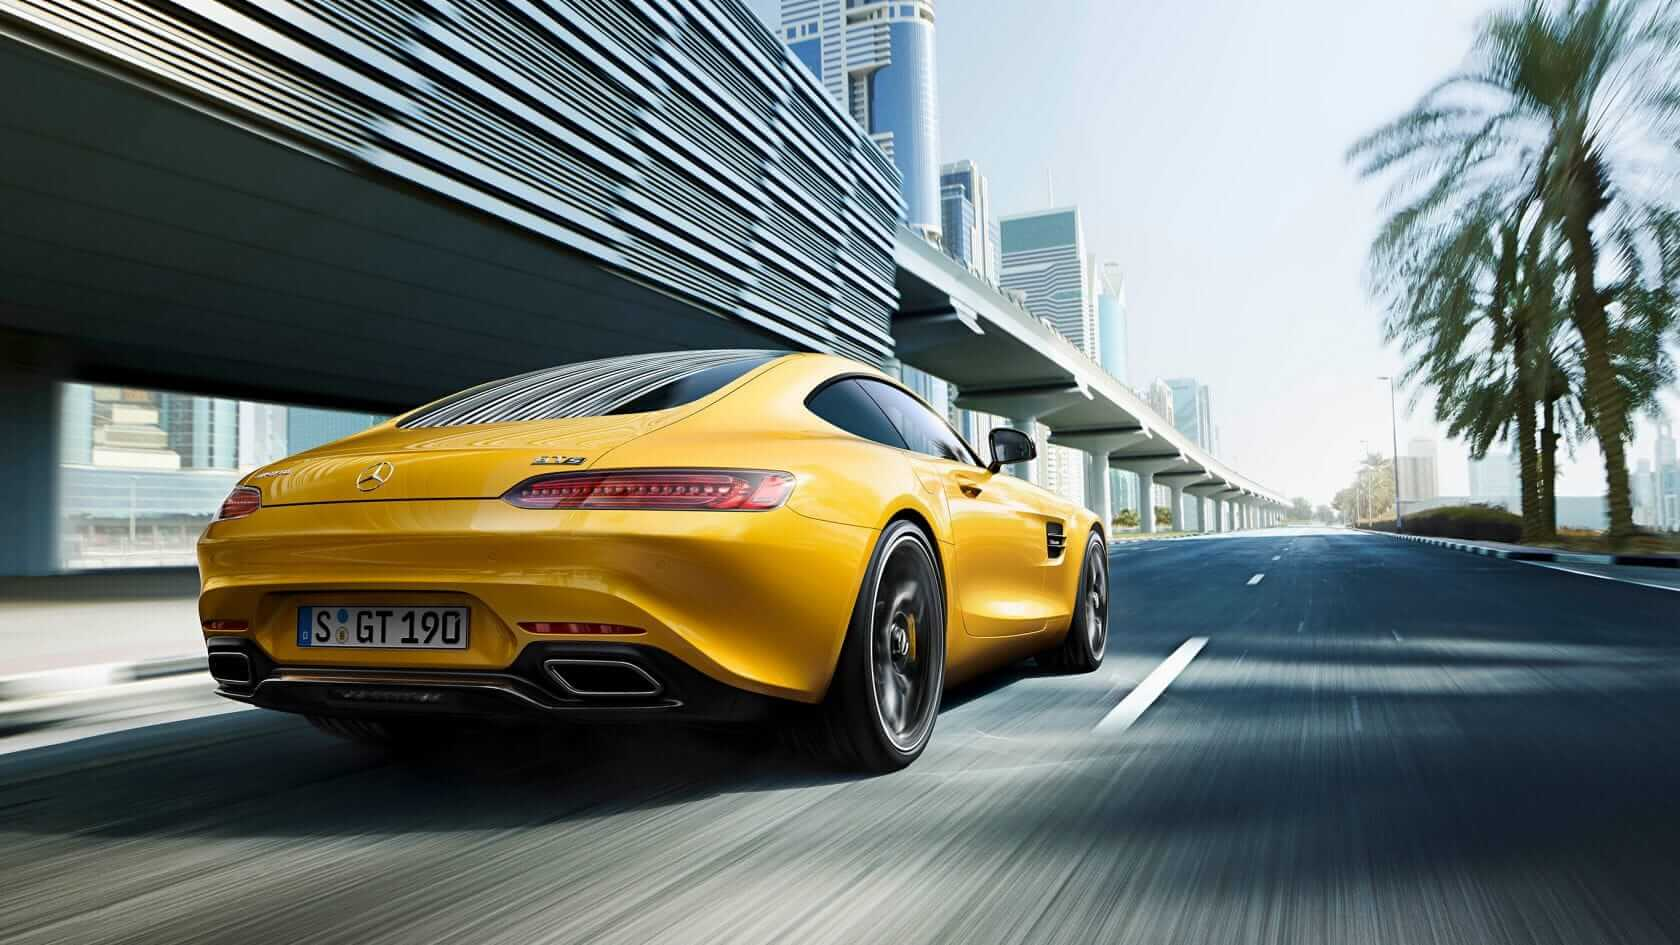 Mercedes AMG GT S rear view